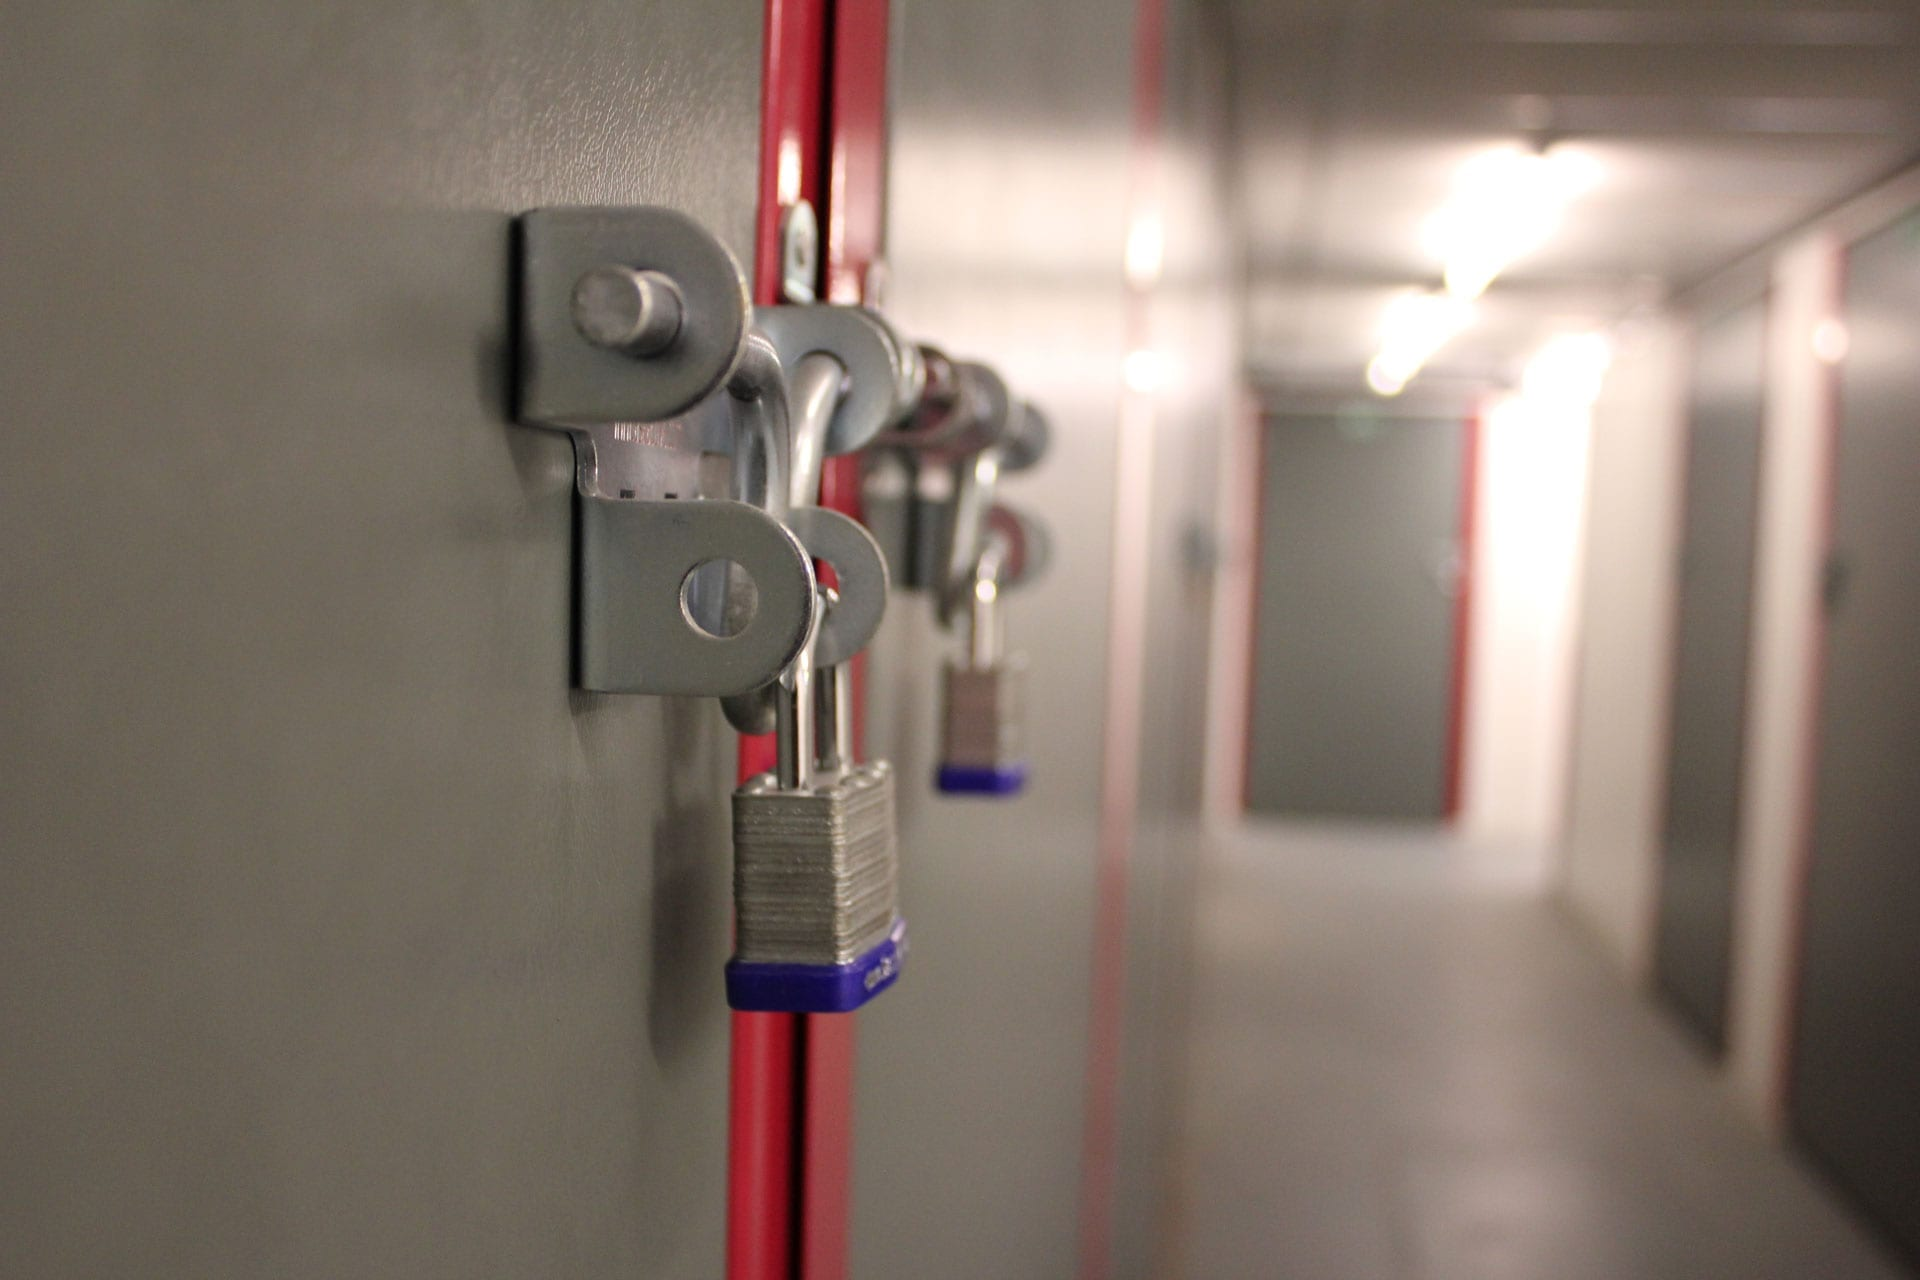 How secure is self storage? How do I protect my belongings?